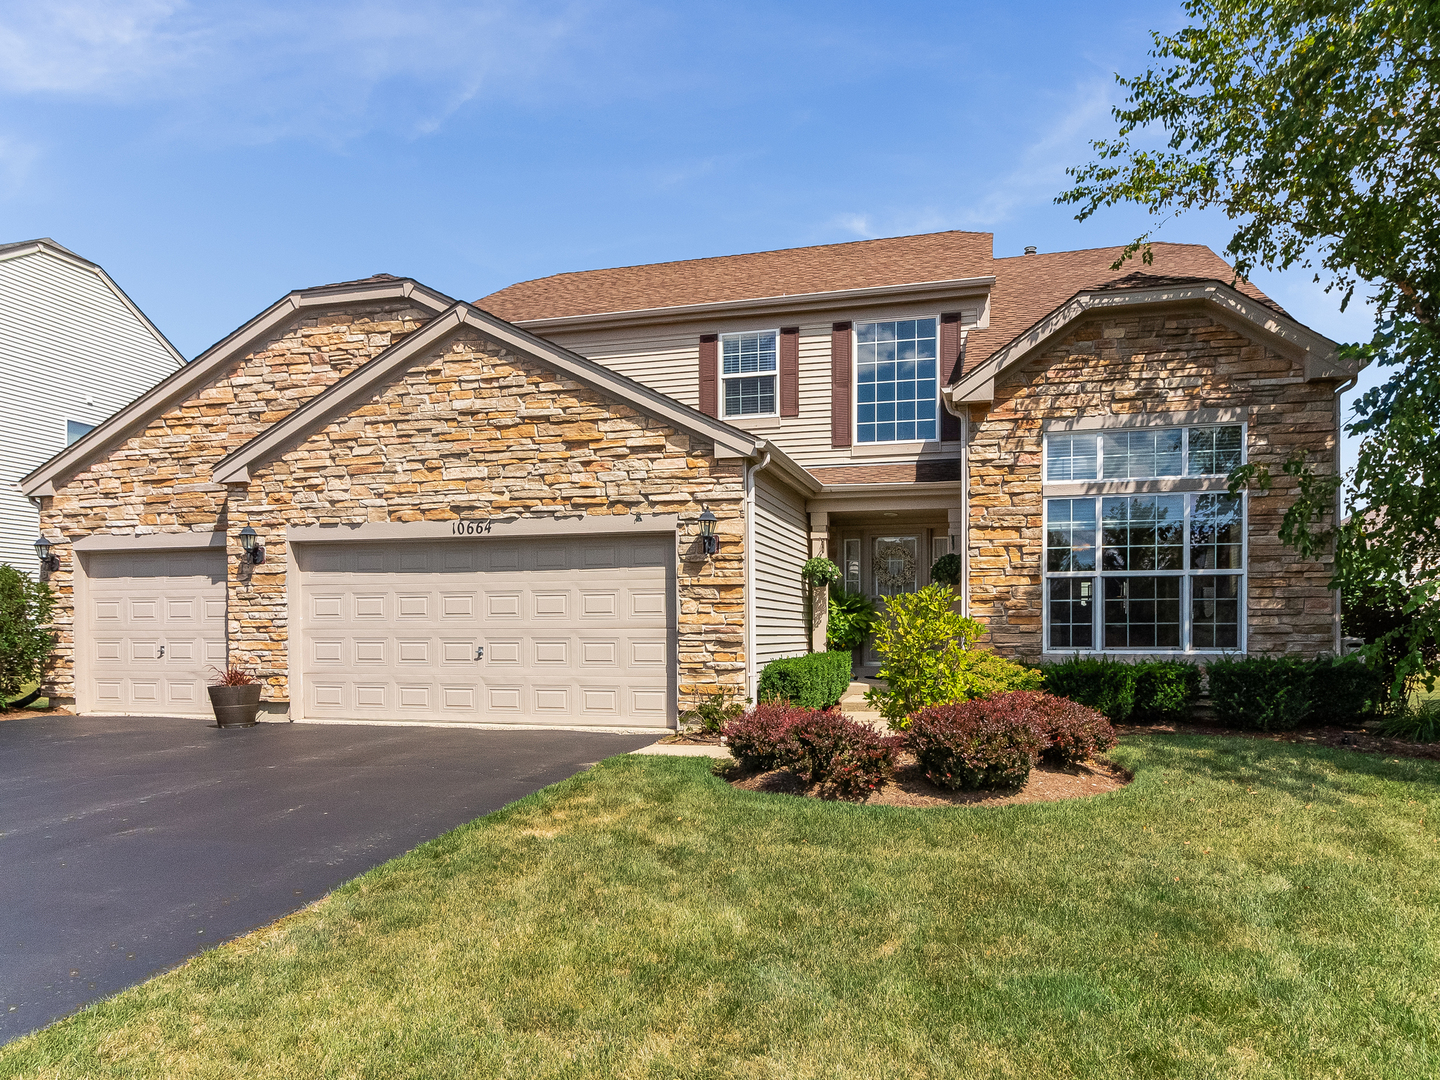 Photo for 10664 Capitol Lane, HUNTLEY, IL 60142 (MLS # 10488678)